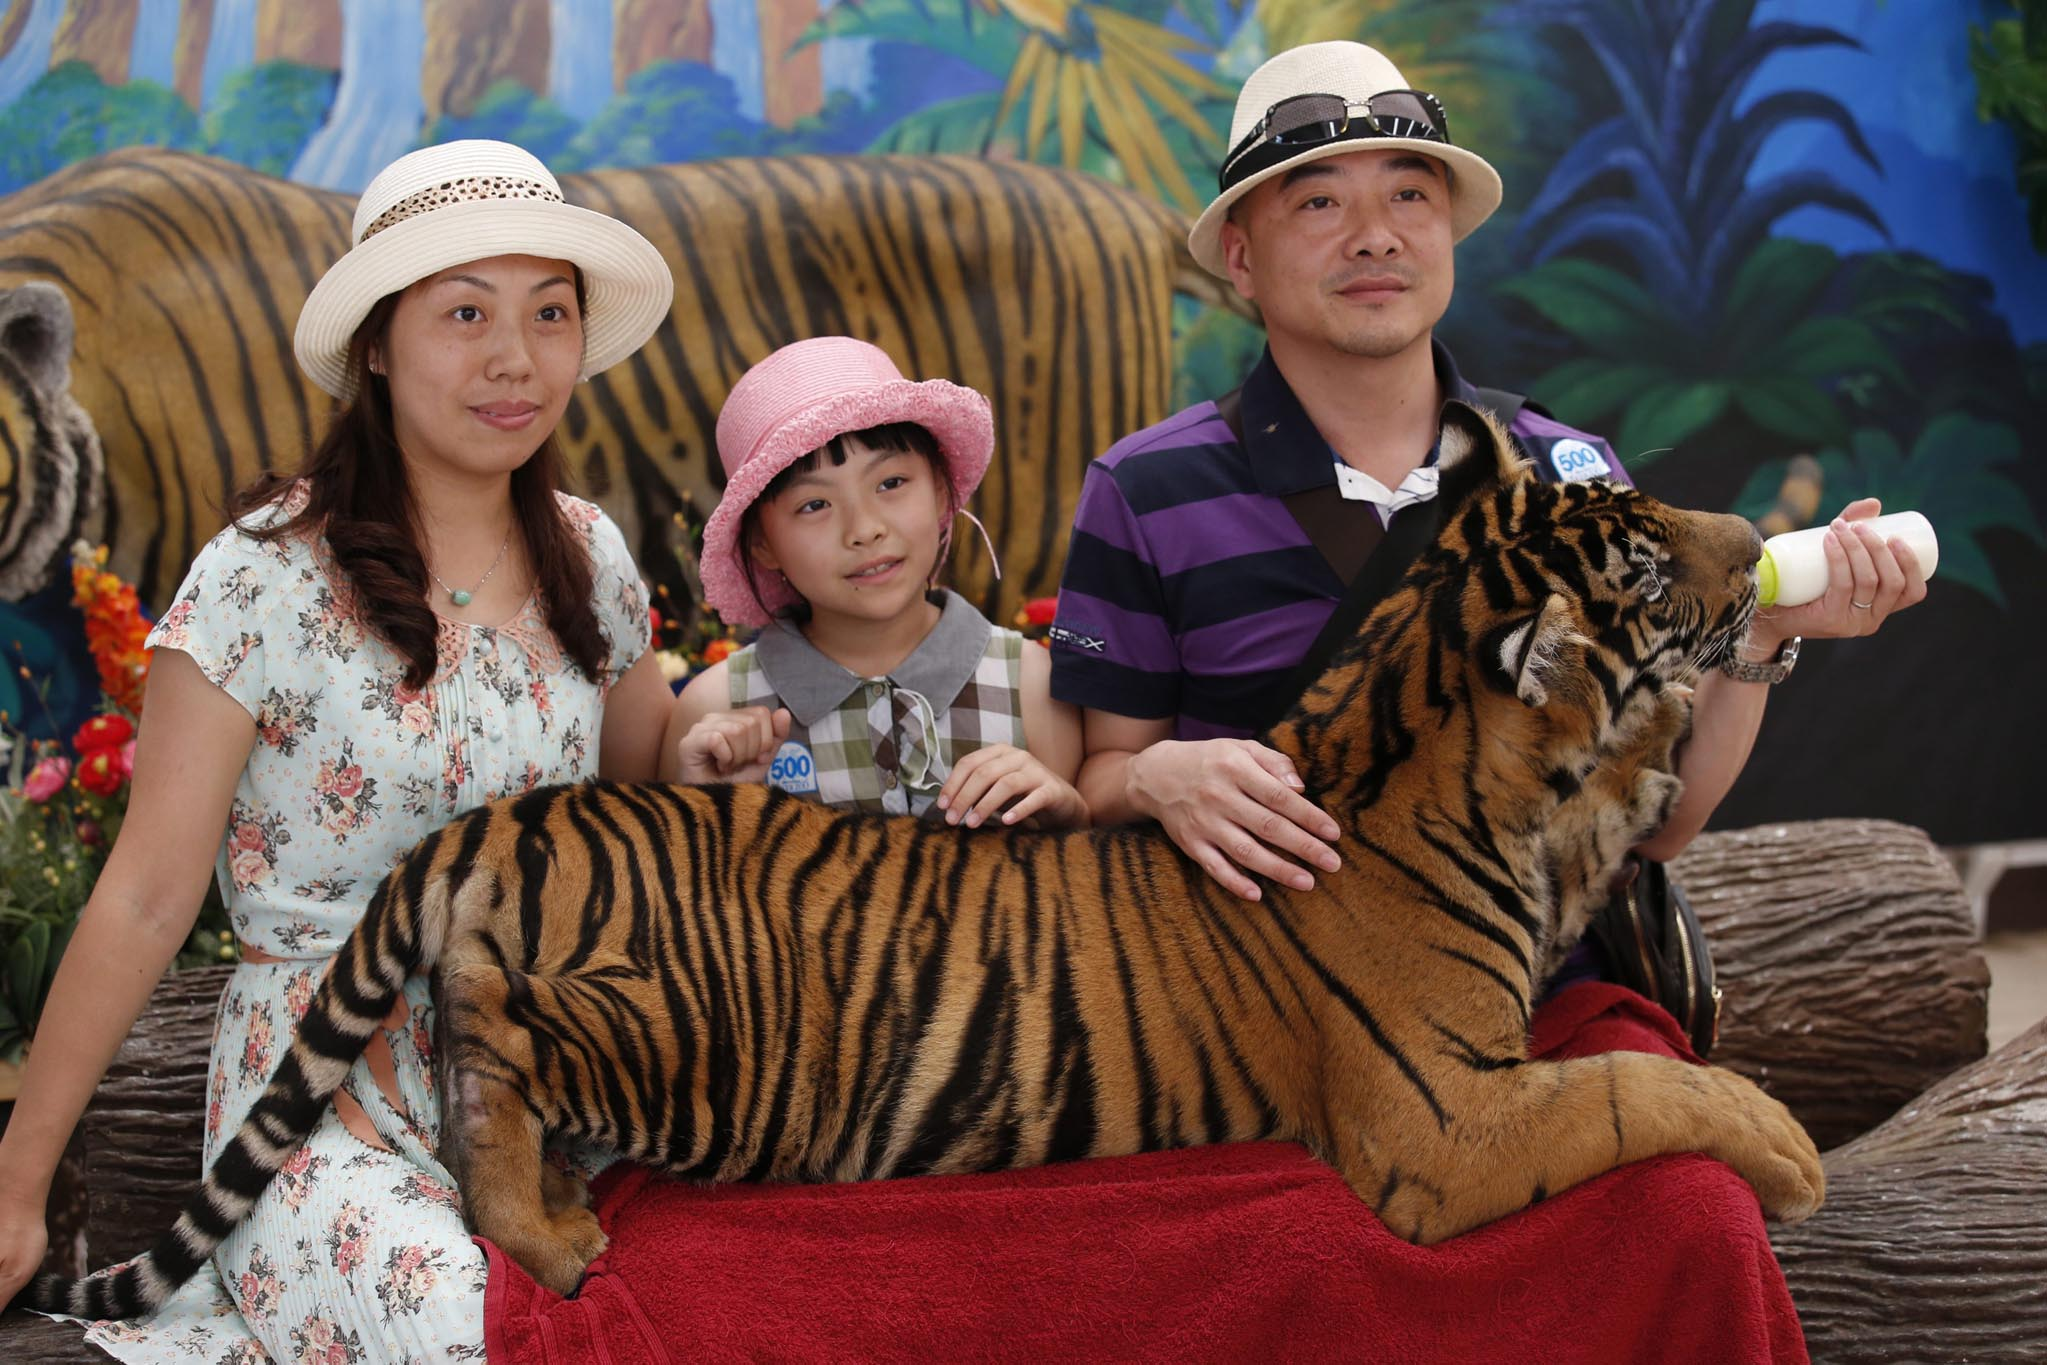 Thailand's booming animal attractions